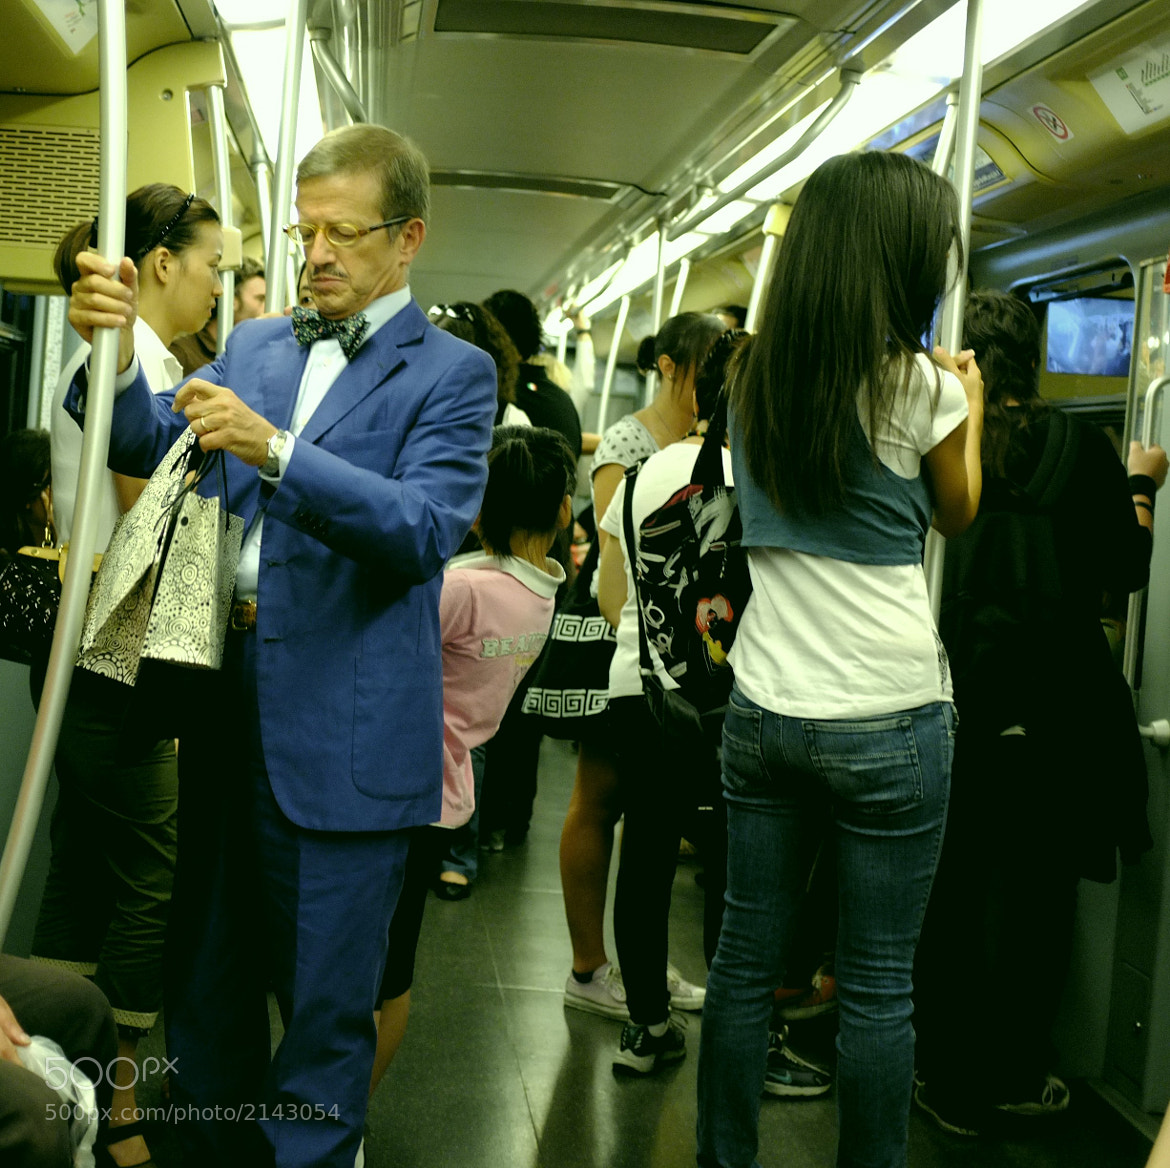 Photograph The Underground Gentleman by Fabio Salmoirago on 500px